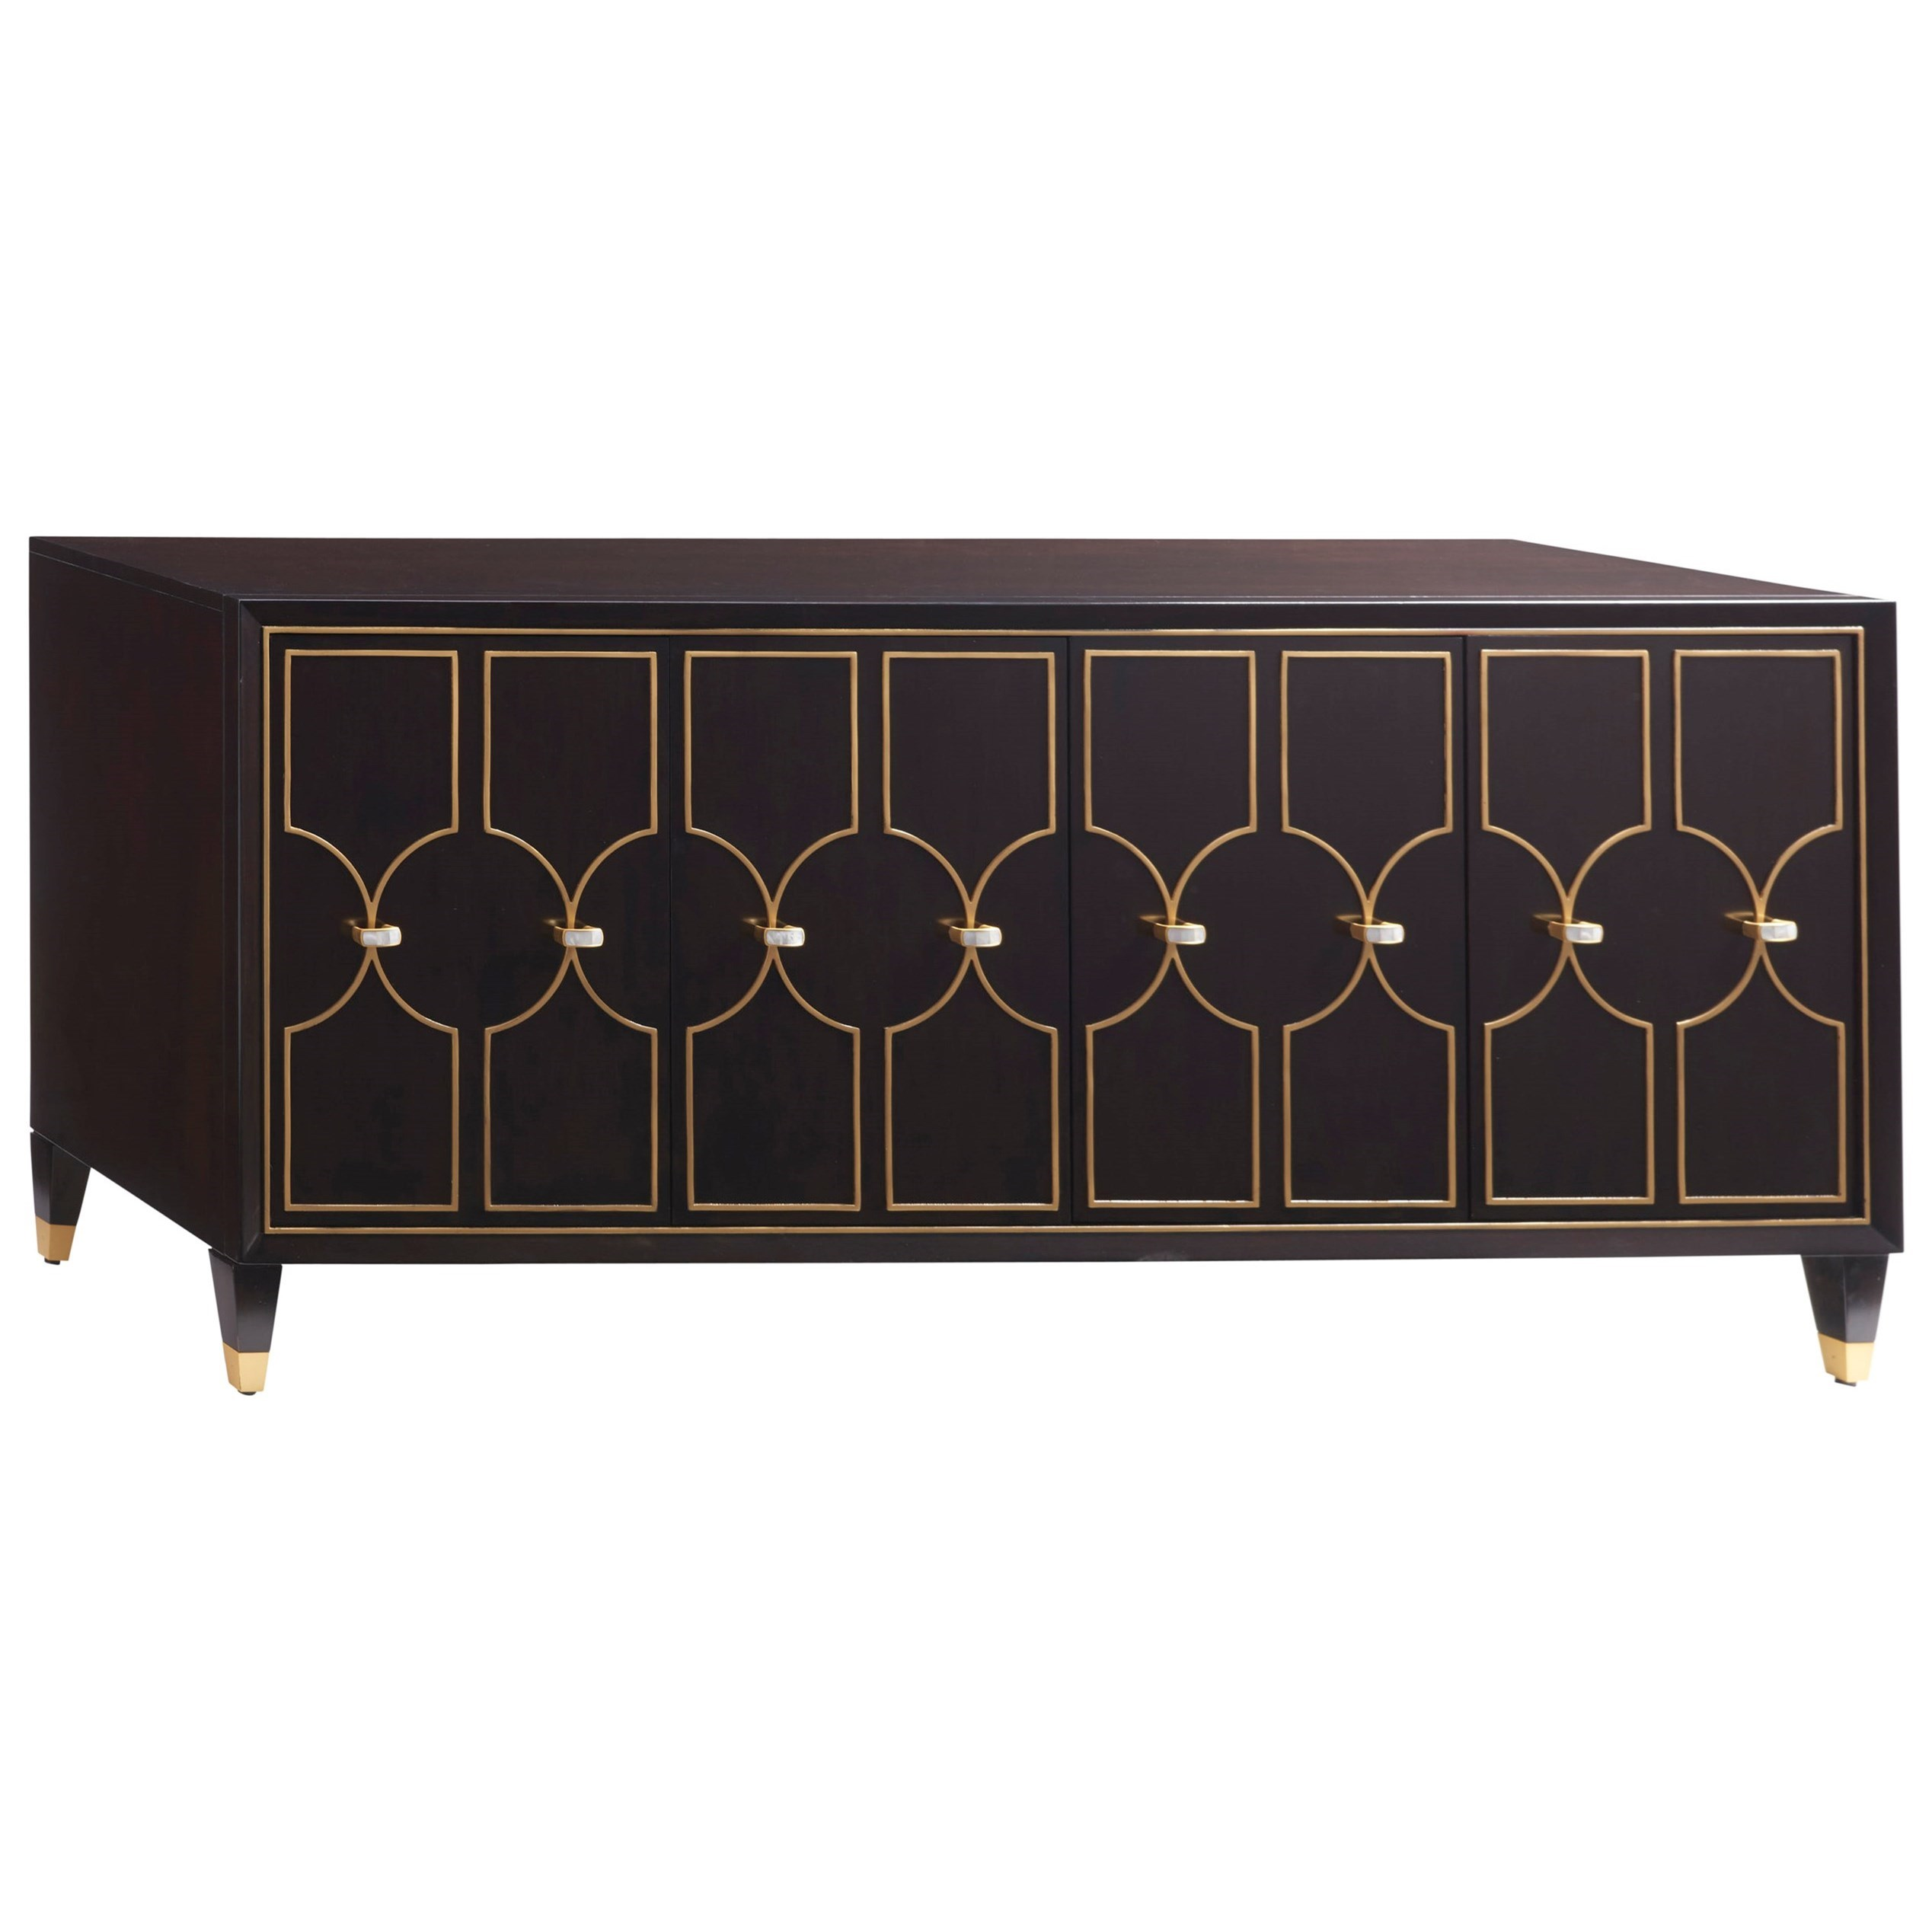 Carlyle Park Avenue Buffet by Lexington at Baer's Furniture